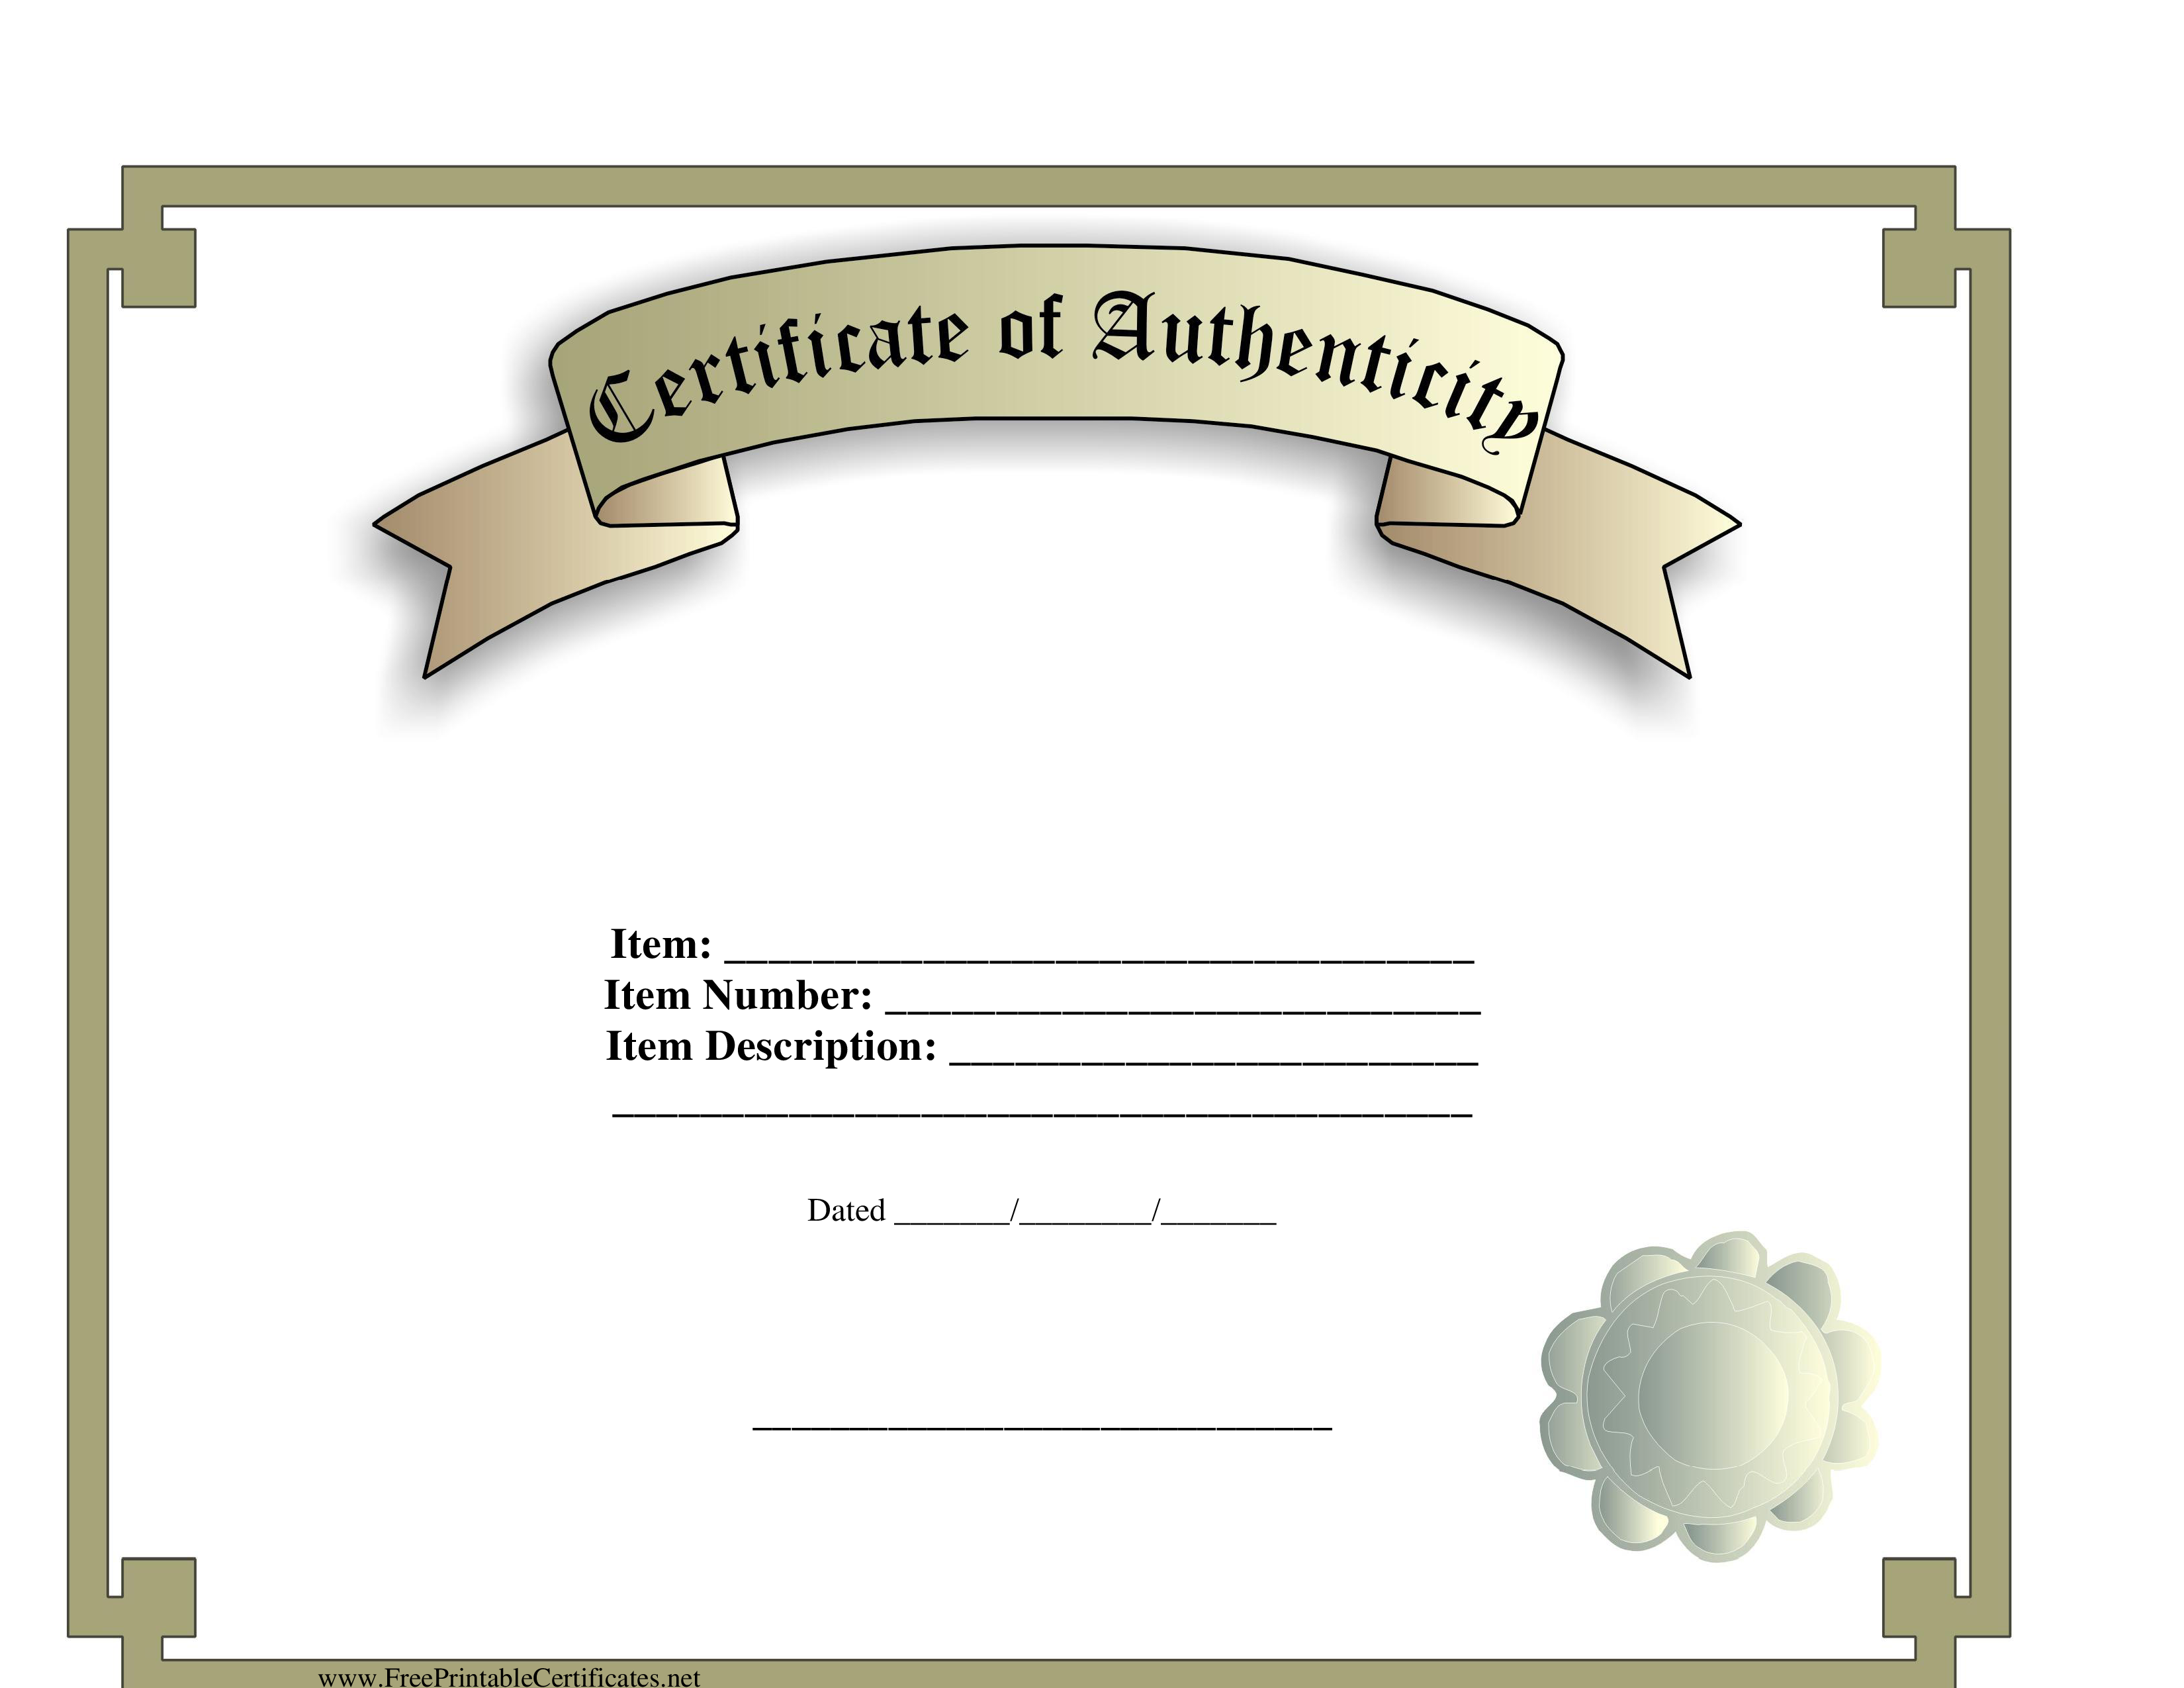 Certificate Of Authenticity Template Are You Drafting A Certificate Of Authenticity Then We S Certificate Templates Business Template Printable Certificates